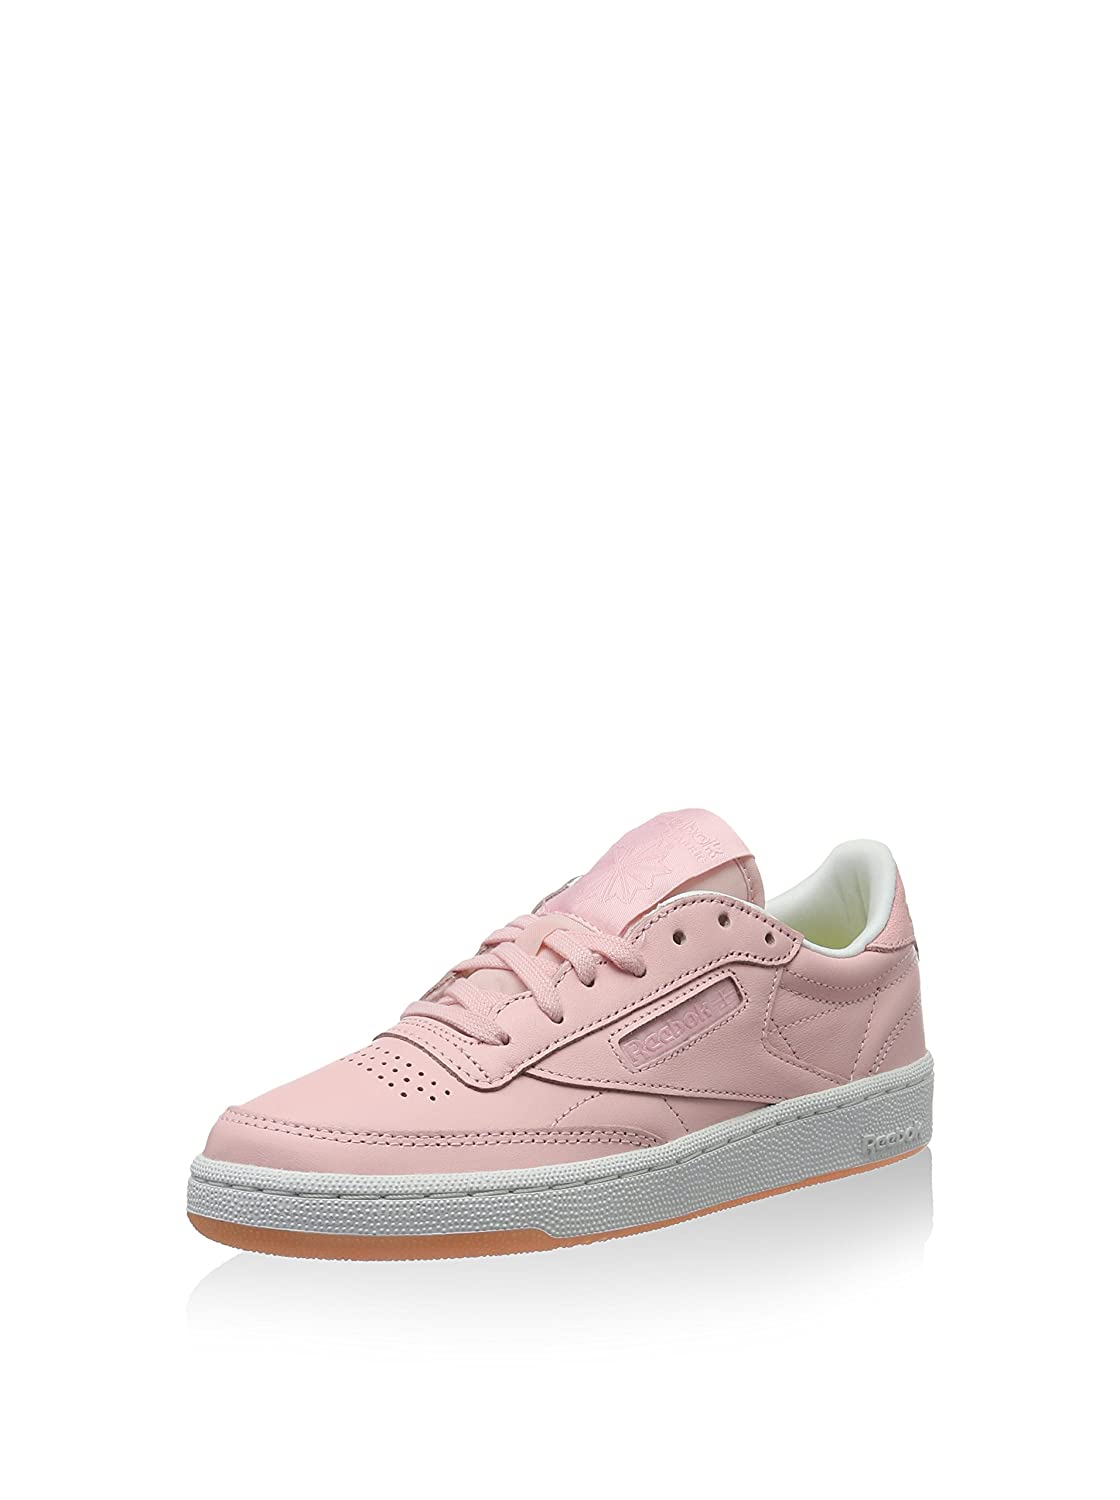 Reebok Damen Club C 85 Face Sneaker, Rosa, 35.5 EU: Amazon